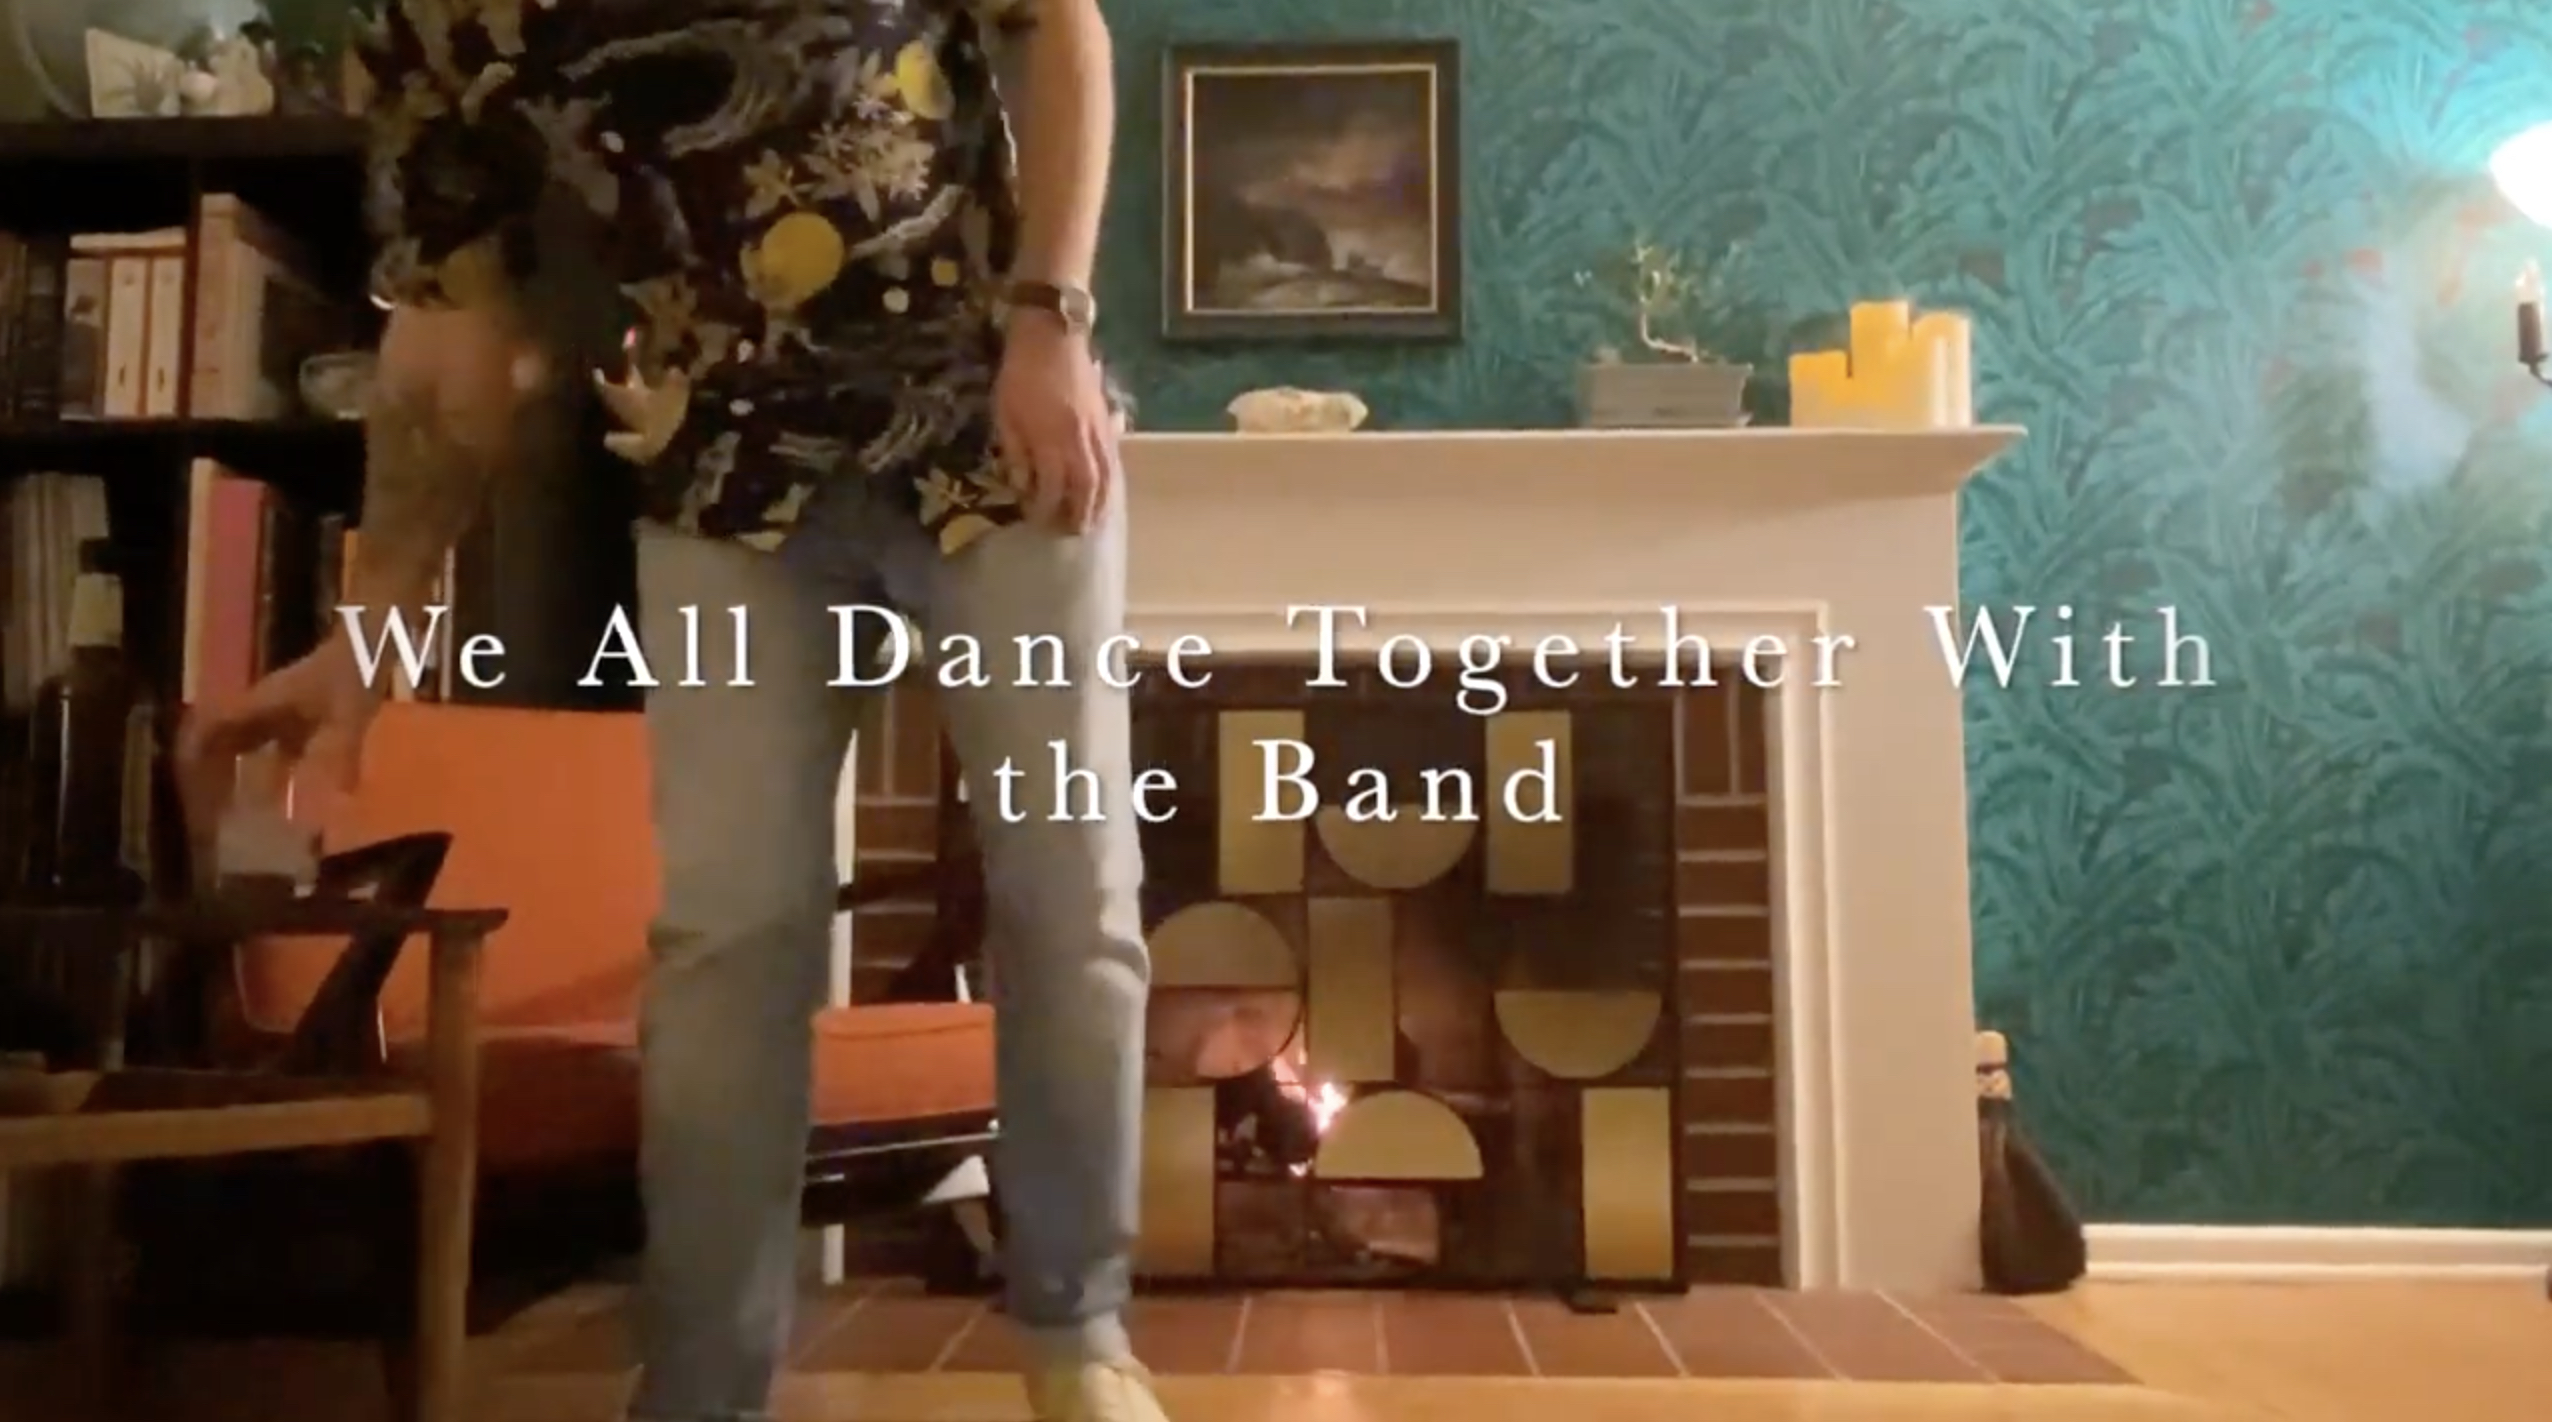 We All Dance Together